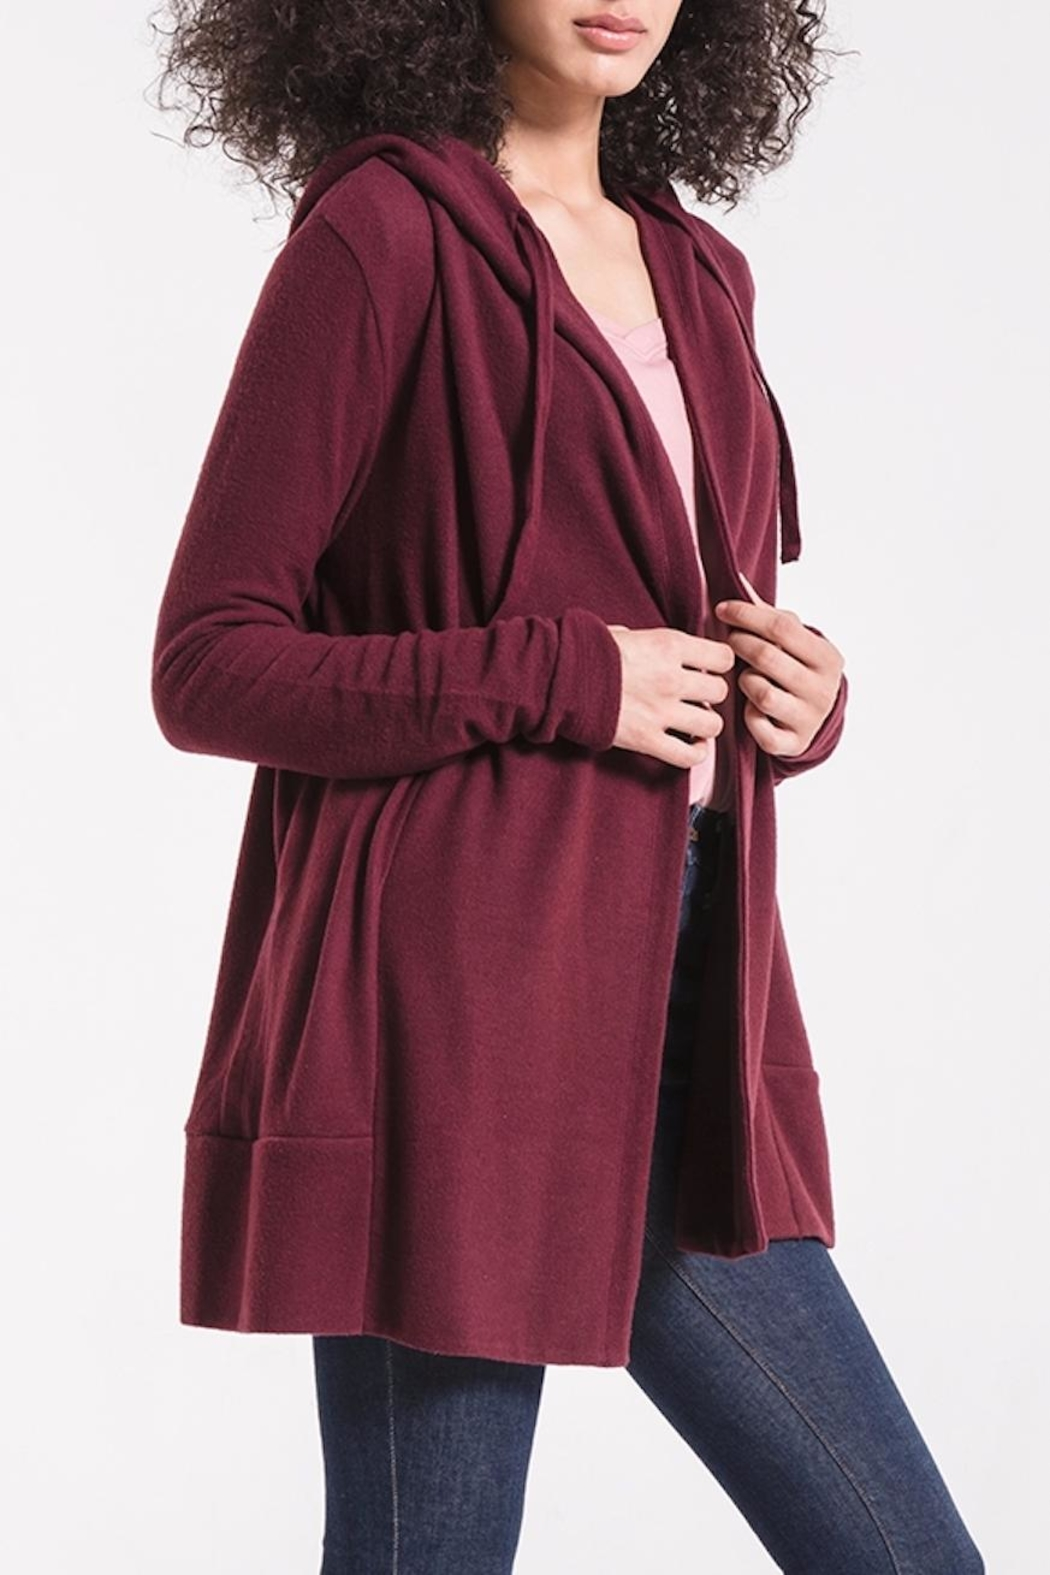 z supply Soft Spun Cardigan - Back Cropped Image